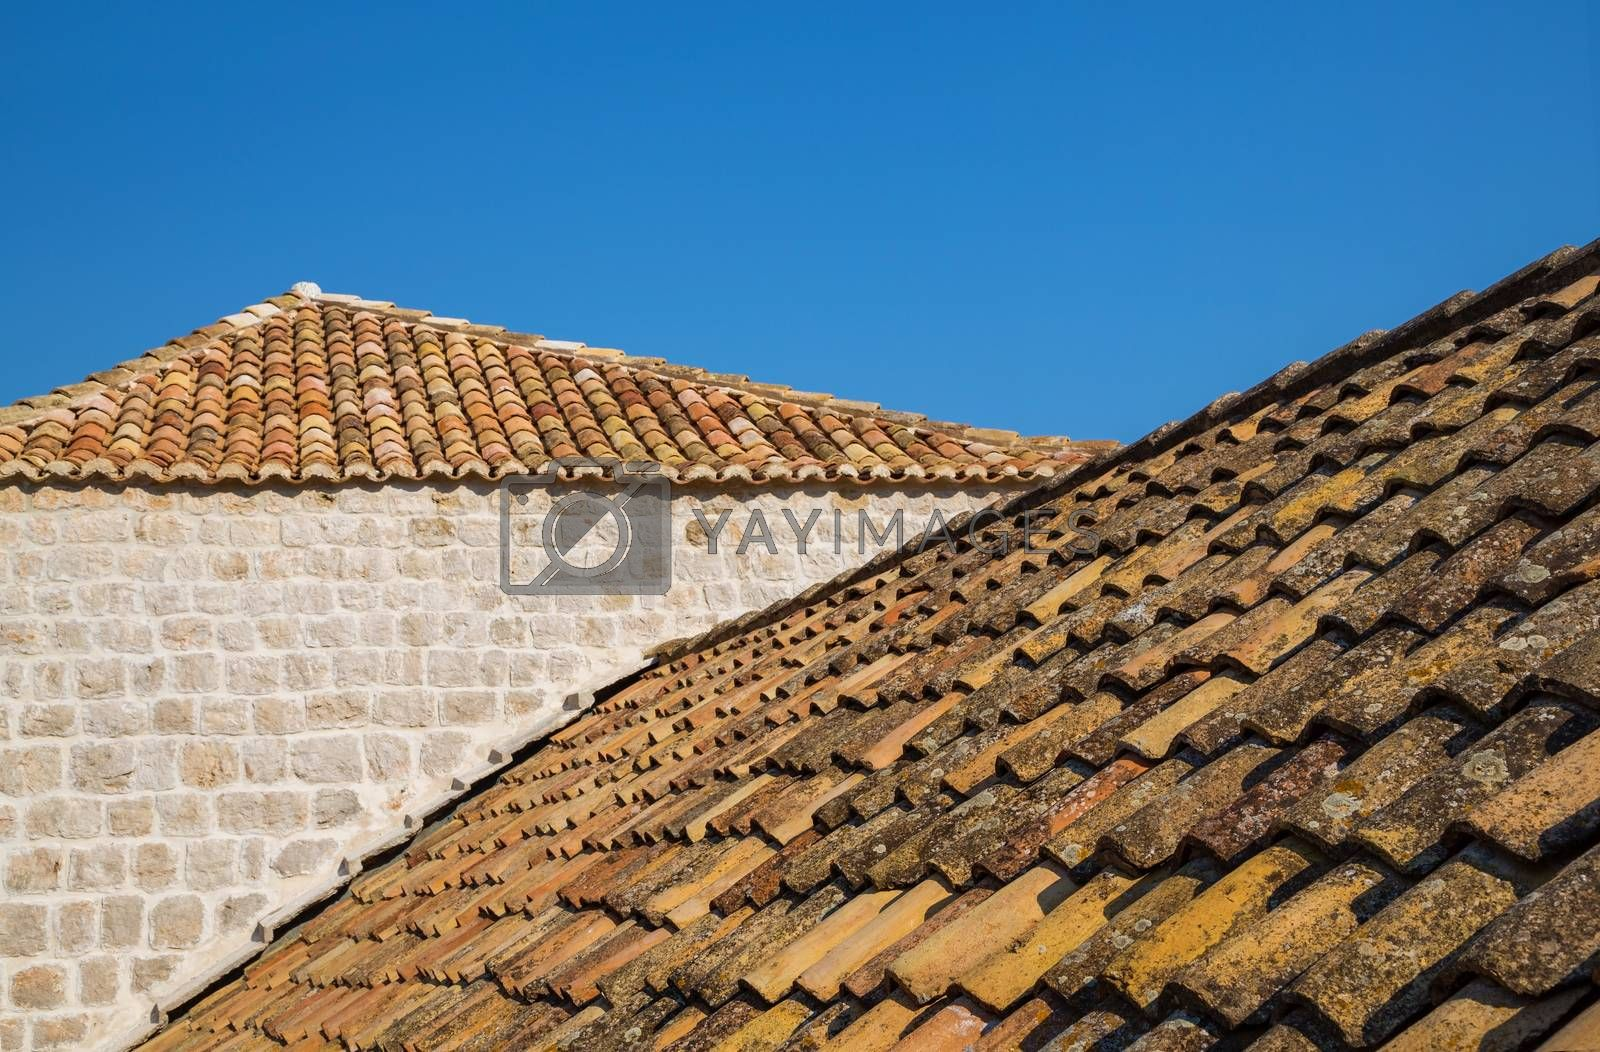 Traditional Mediterranean houses with red tiled roofs and Dubrovnik fortress bastions, Dalmatia, Croatia, Europe.